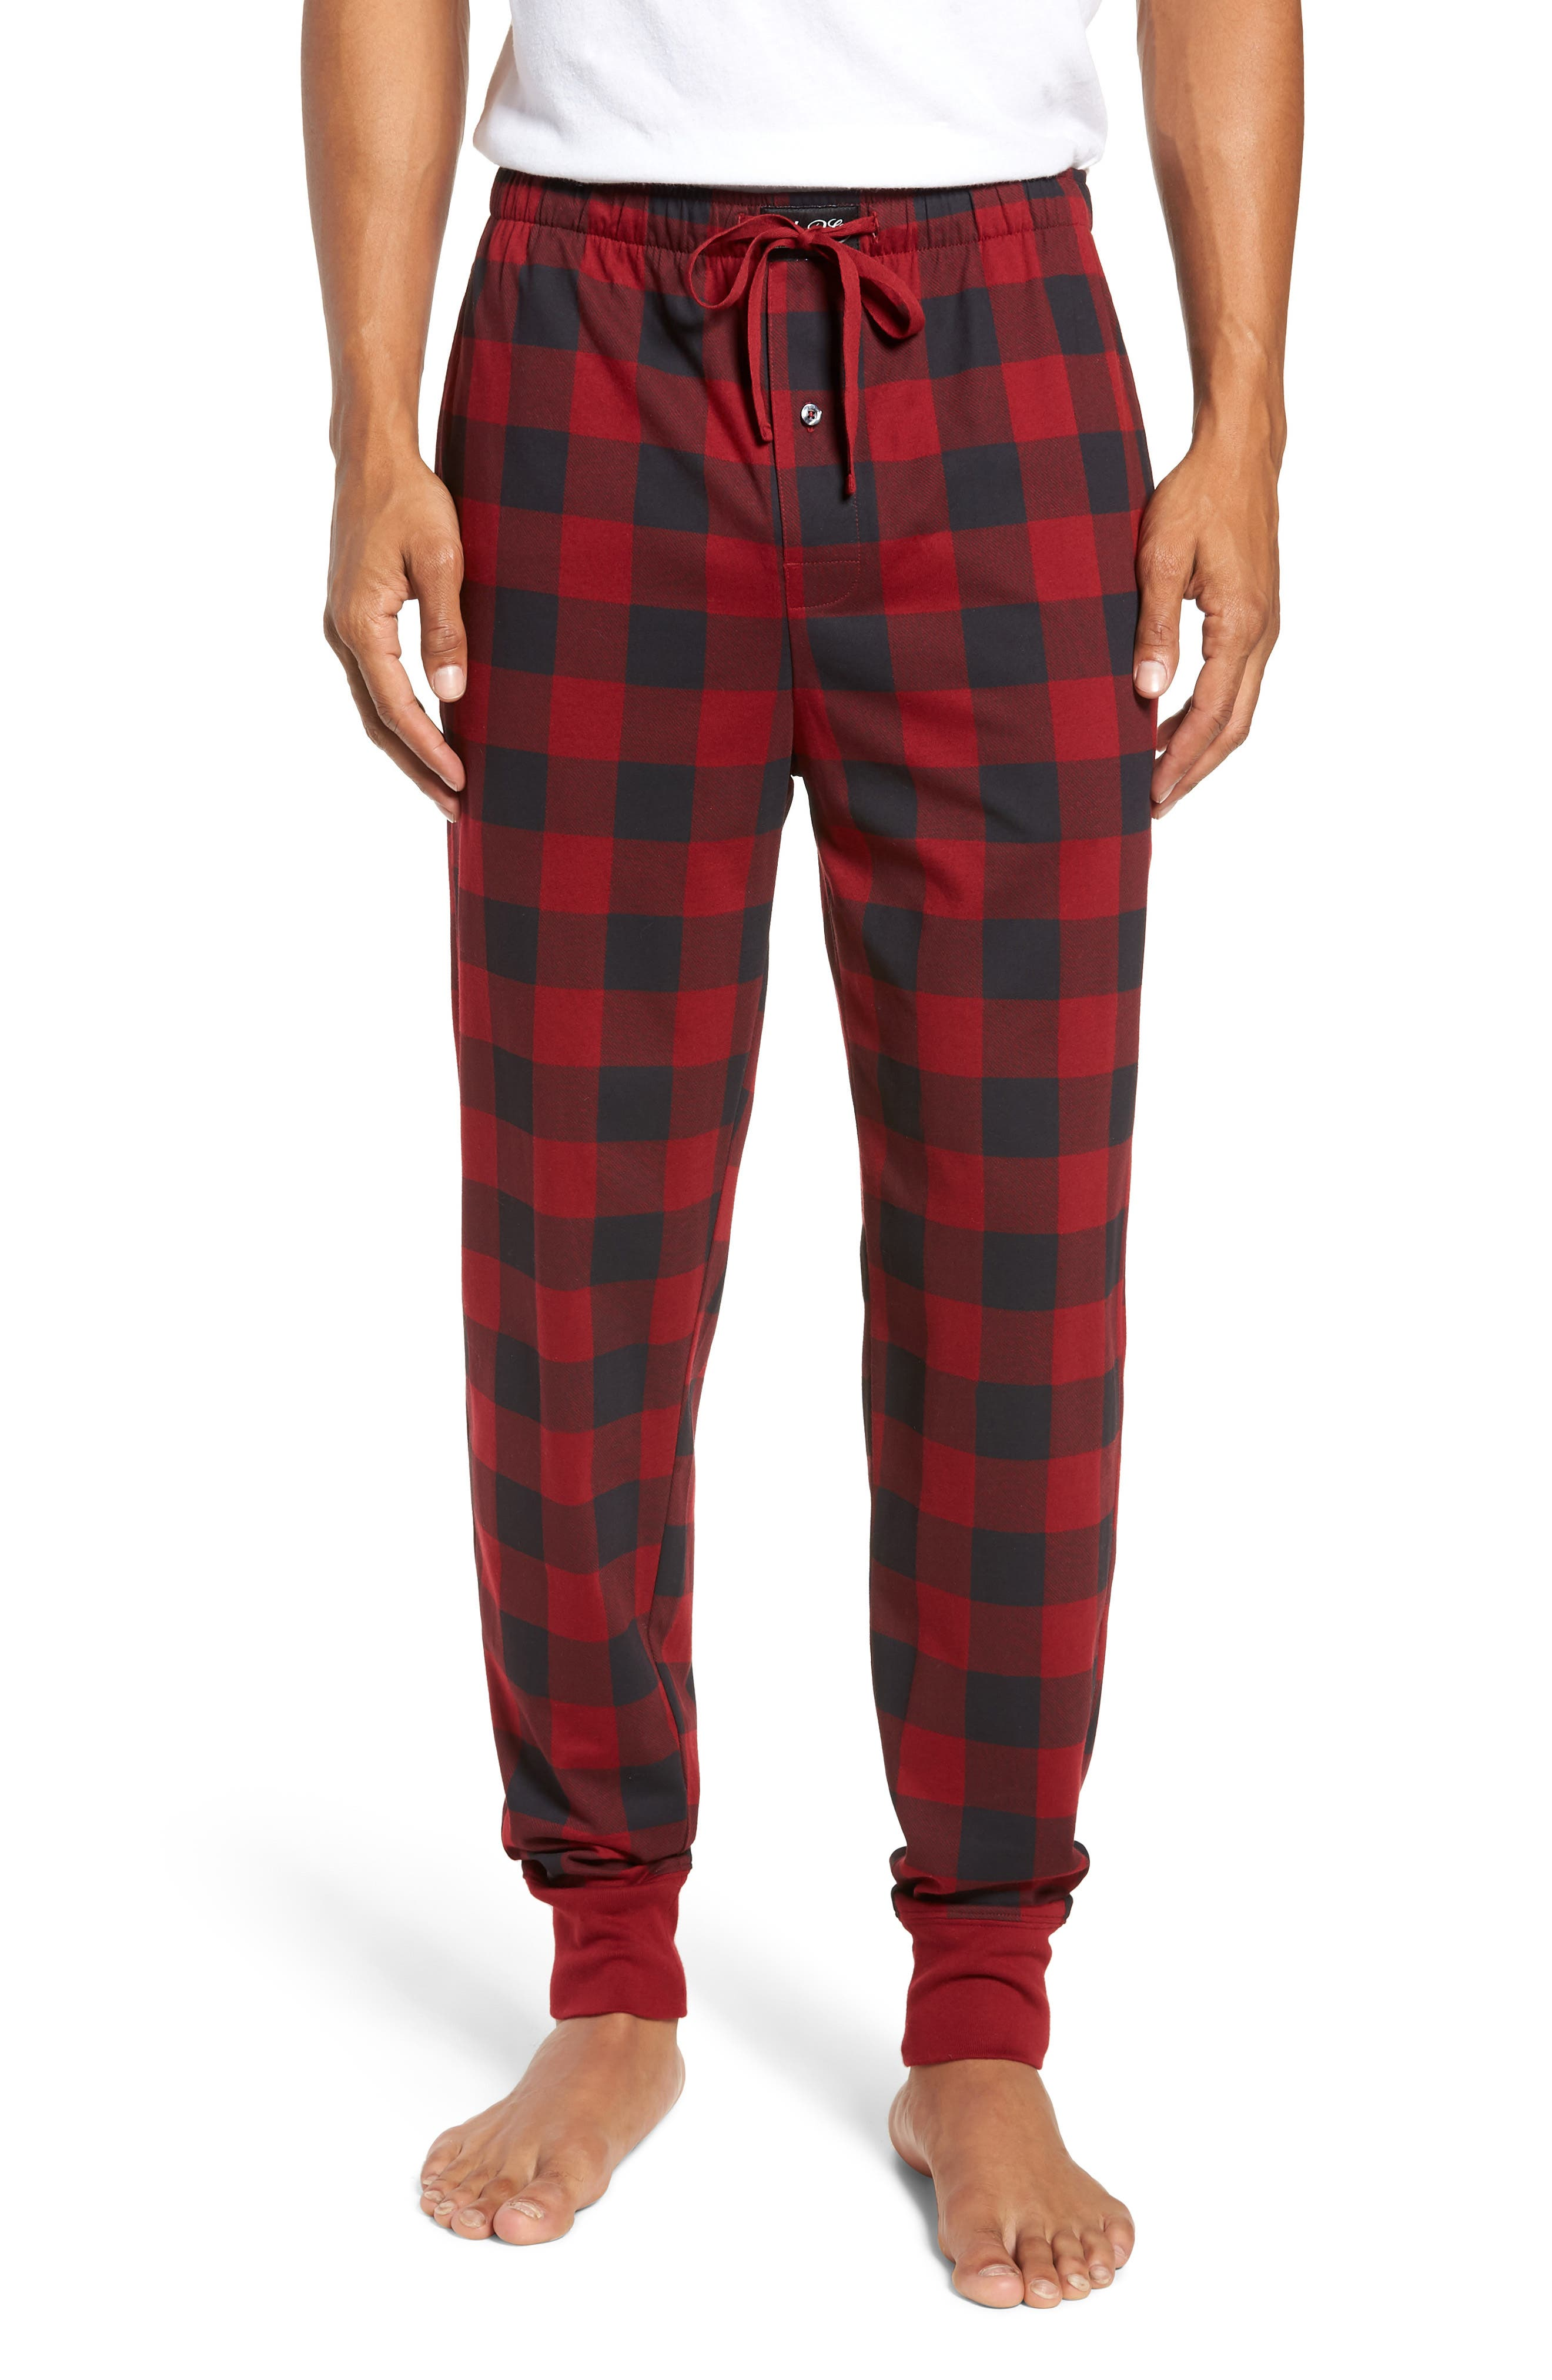 Cotton Lounge Pants,                             Main thumbnail 1, color,                             HOLIDAY RED